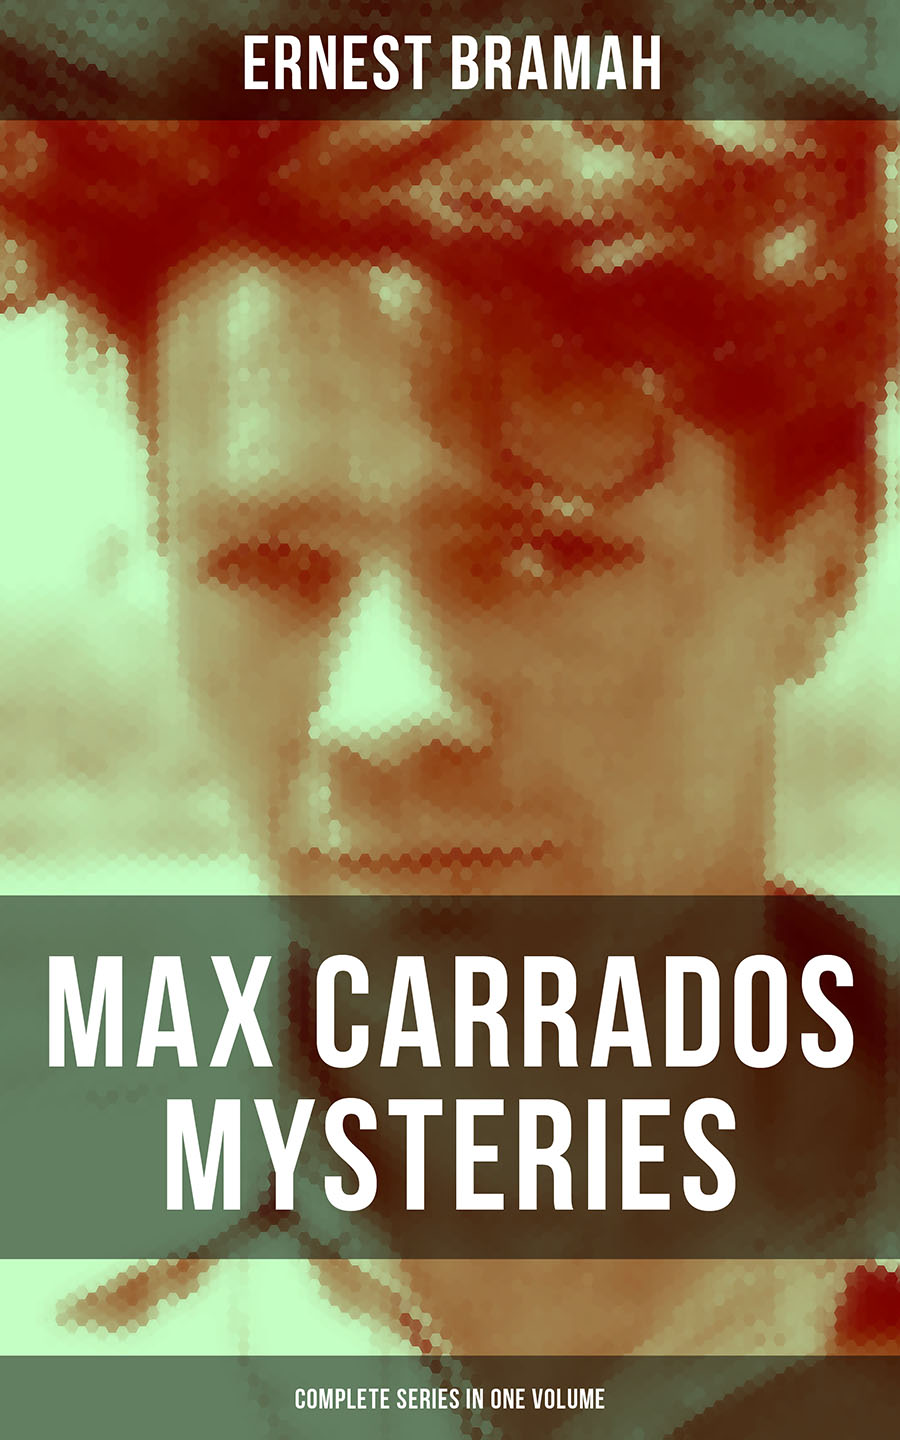 Bramah Ernest MAX CARRADOS MYSTERIES - Complete Series in One Volume bramah ernest the eyes of max carrados